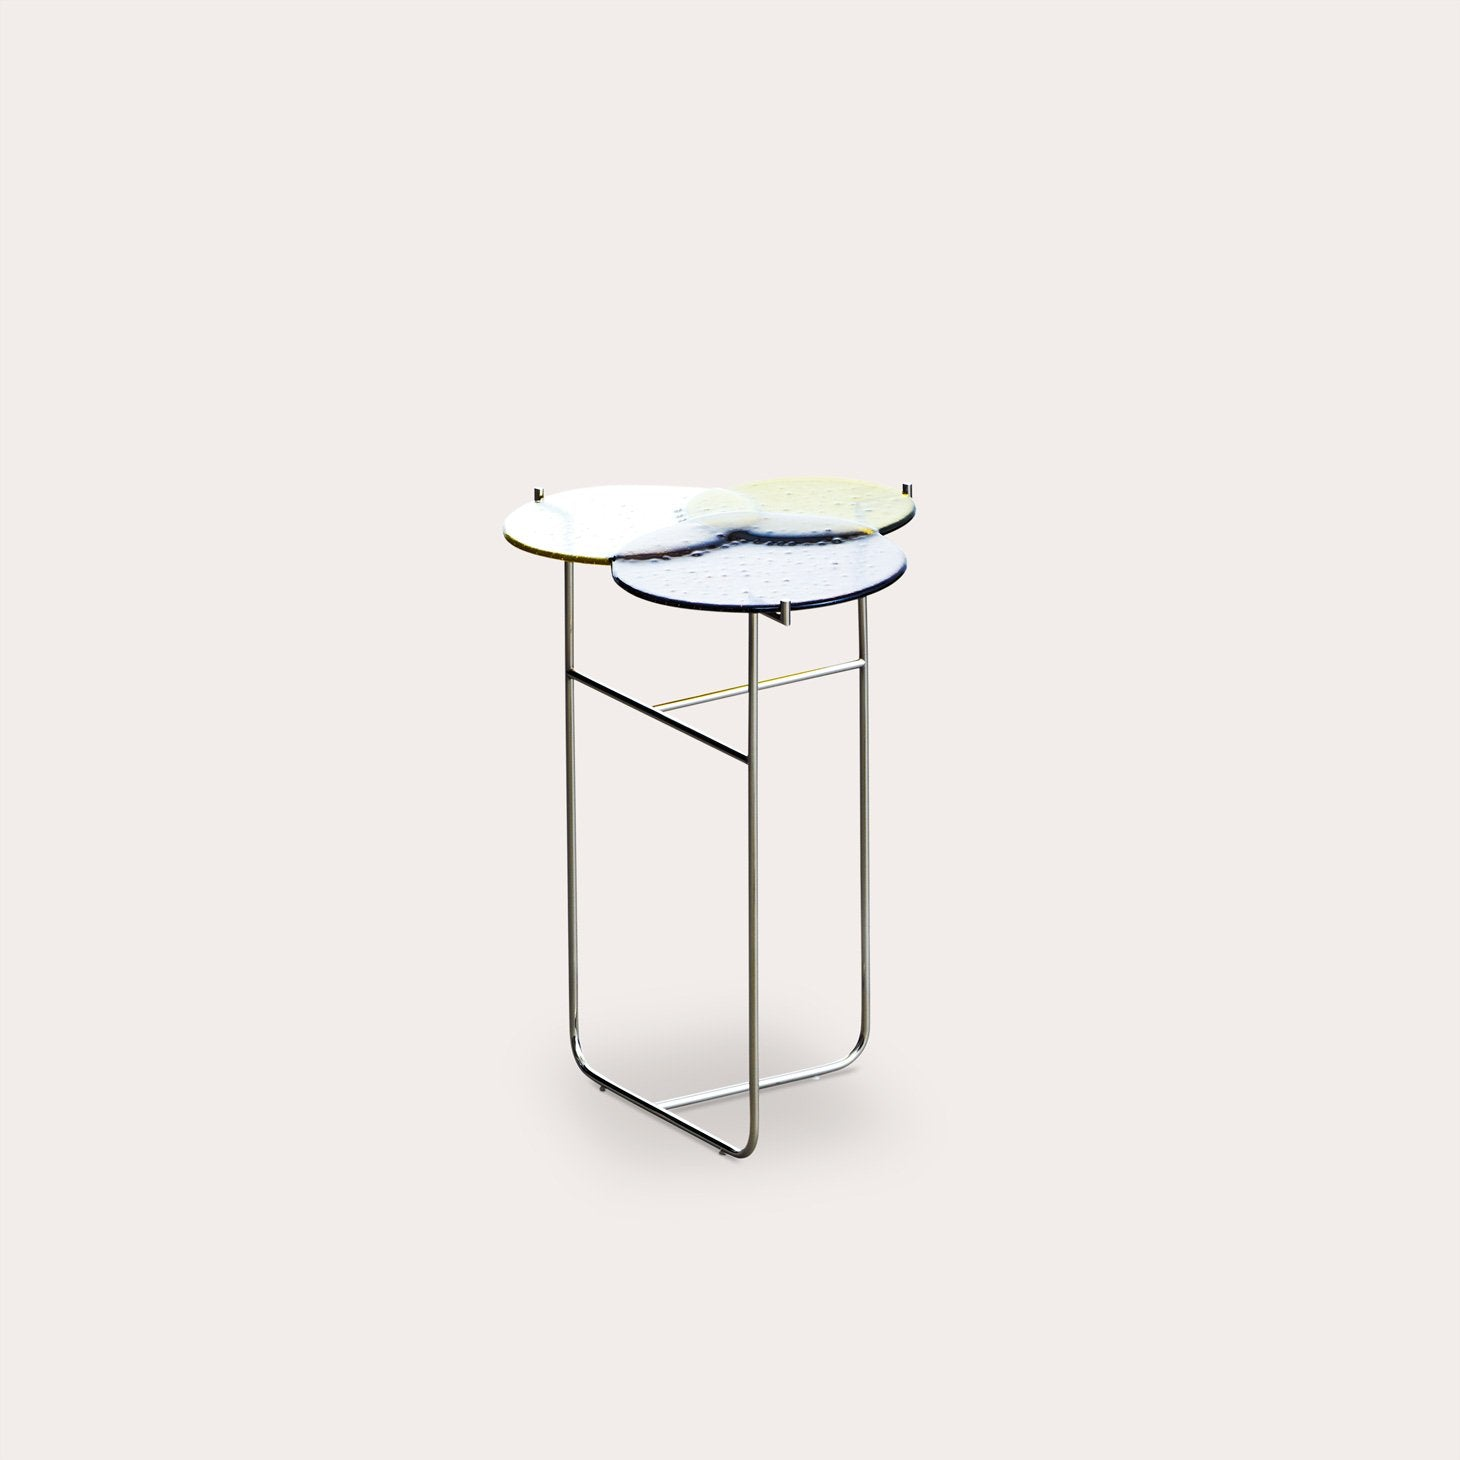 Pastille Tables Sebastian Herkner Designer Furniture Sku: 806-230-10009